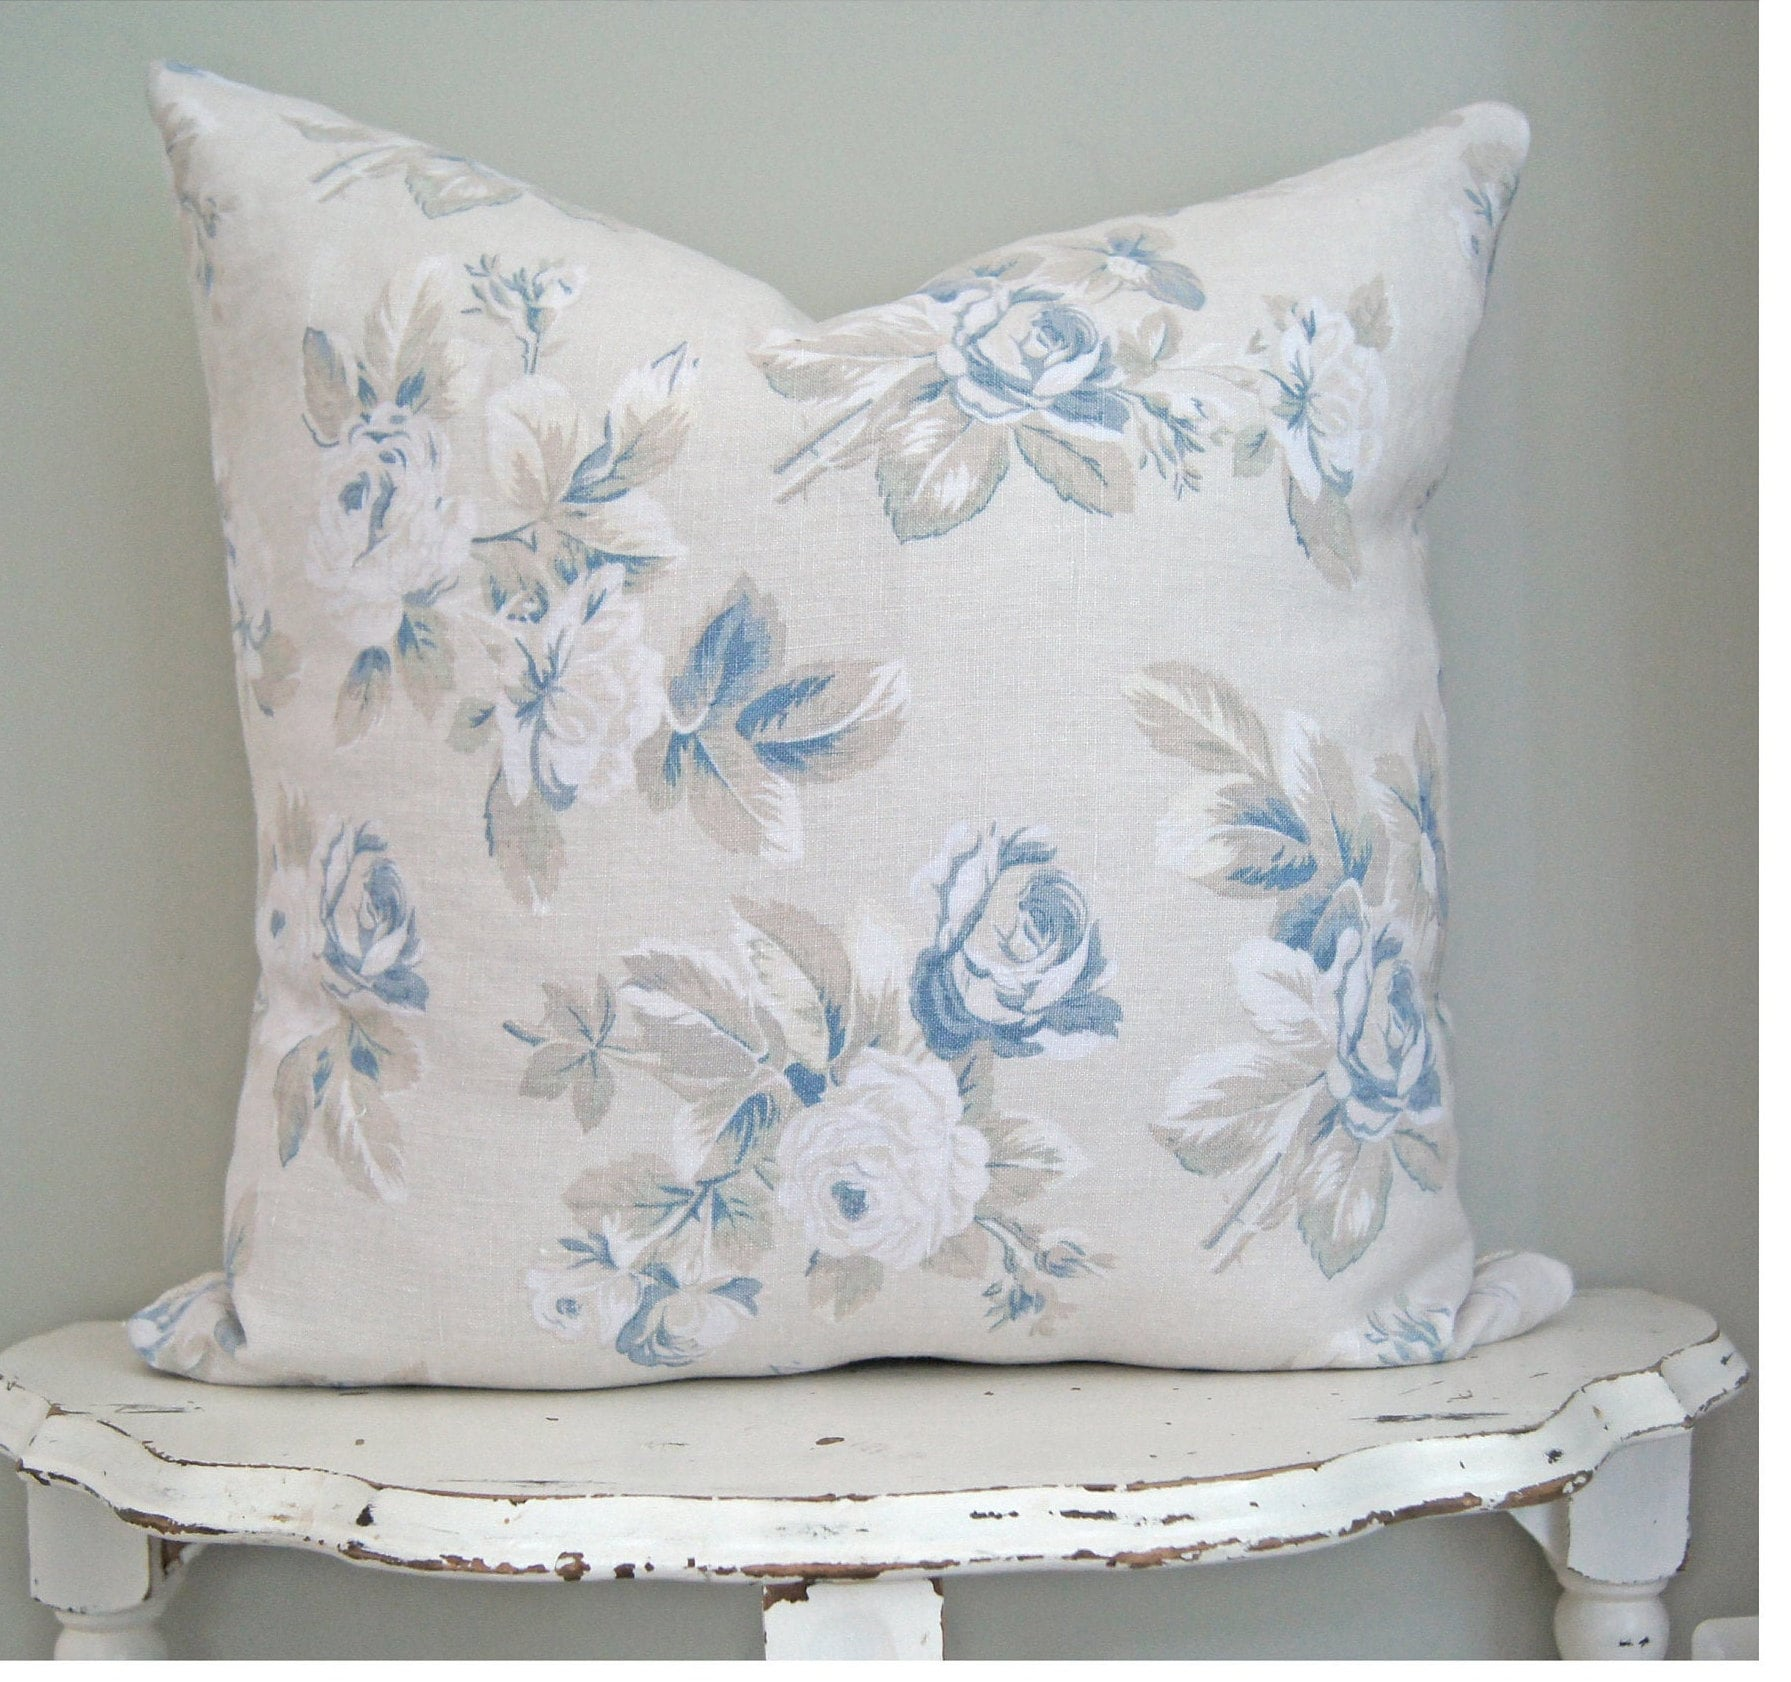 Blue Floral Pillow Cover Shabby Chic Decor Muted Floral | Etsy